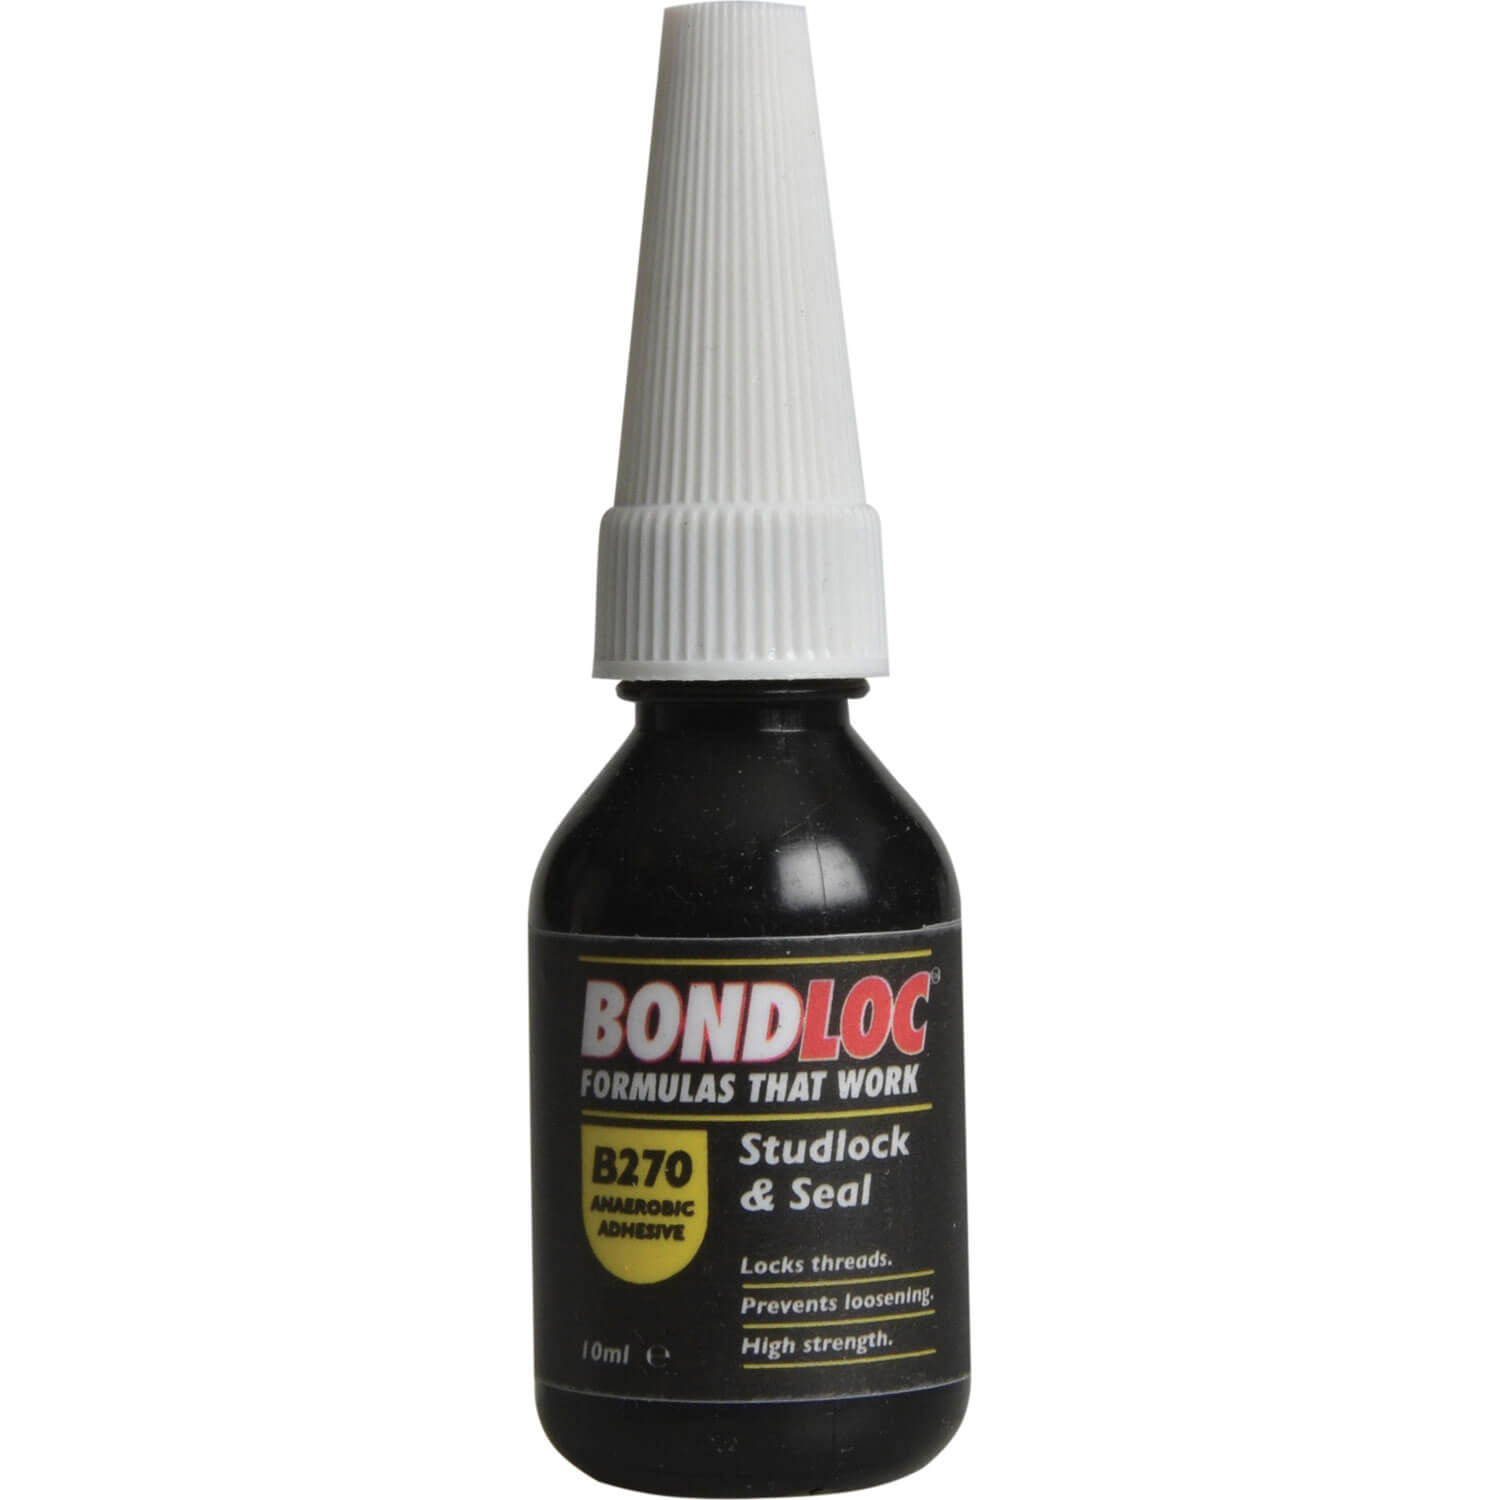 Image of Bondloc B270 Studlock High Strength Threadlocking Sealant 10ml